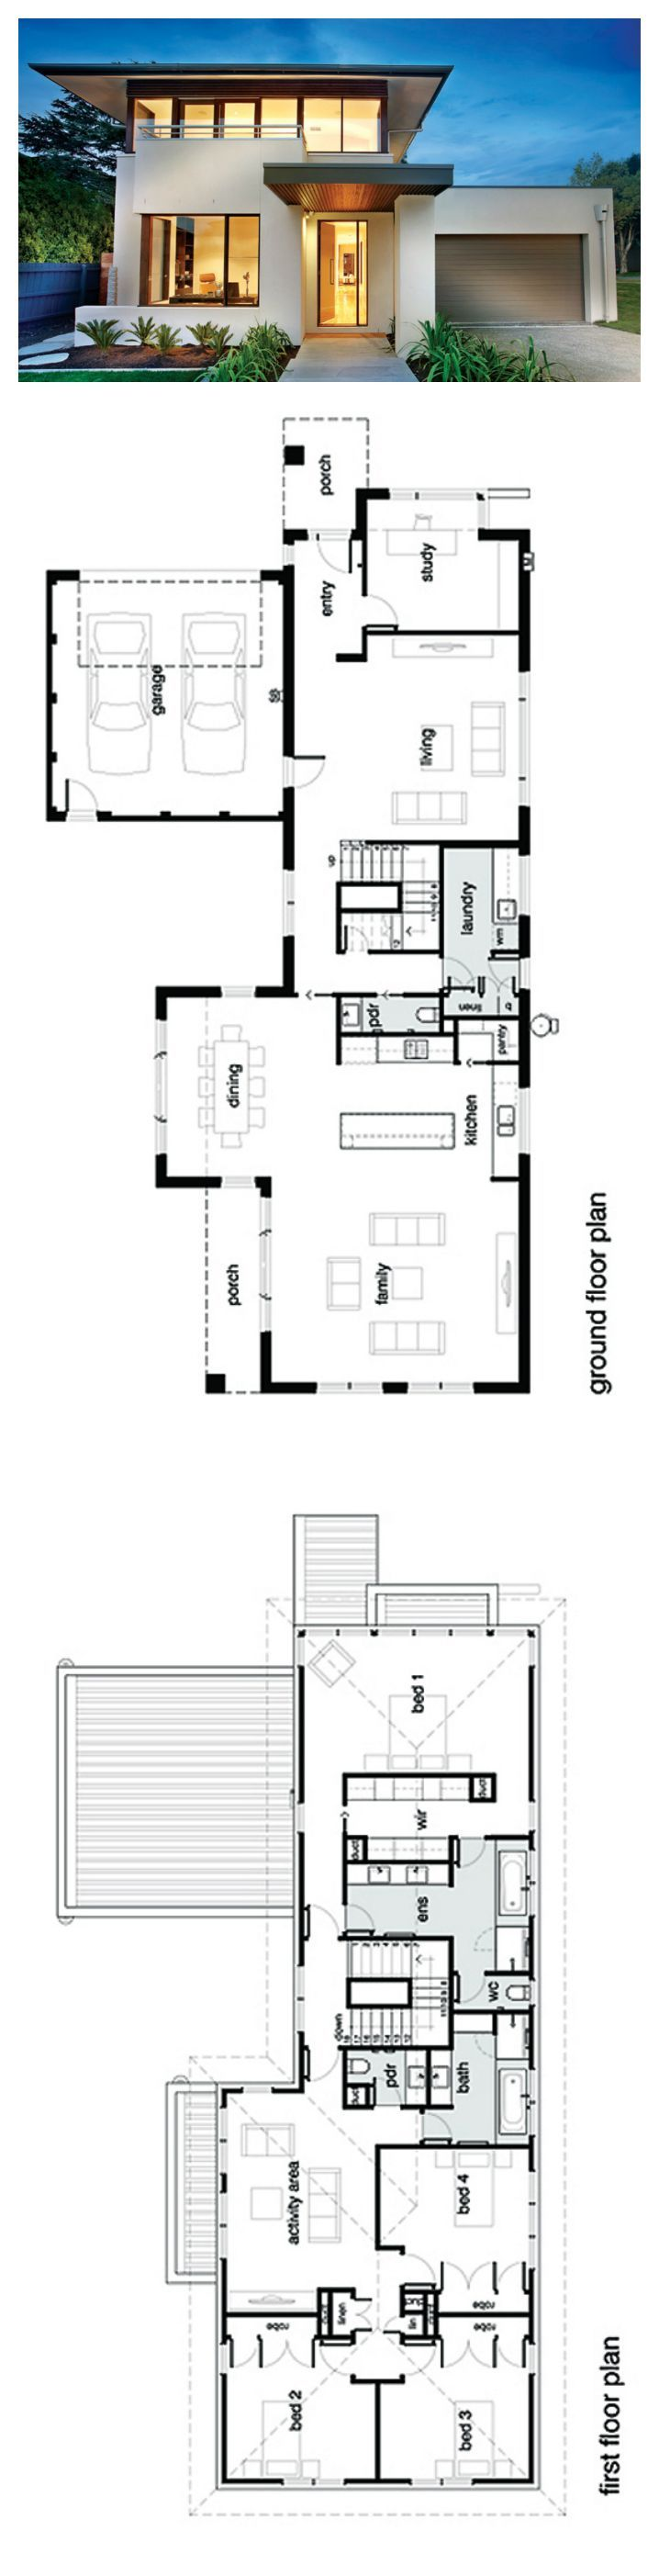 modern master bedroom floor plans best 25 modern house plans ideas on 19270